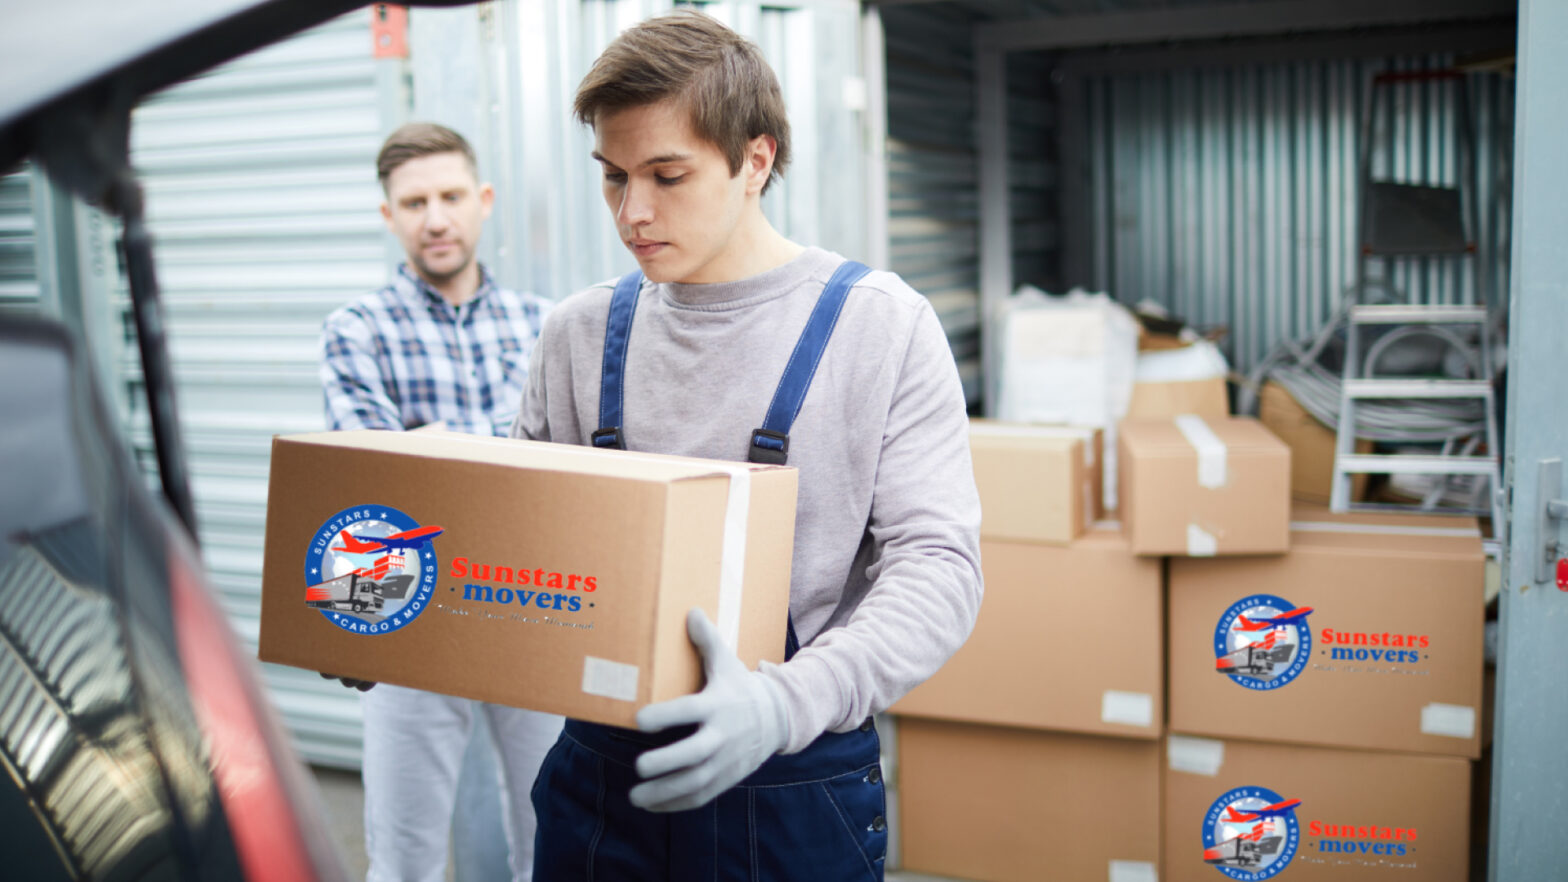 professional office moving service – Sunstars Movers